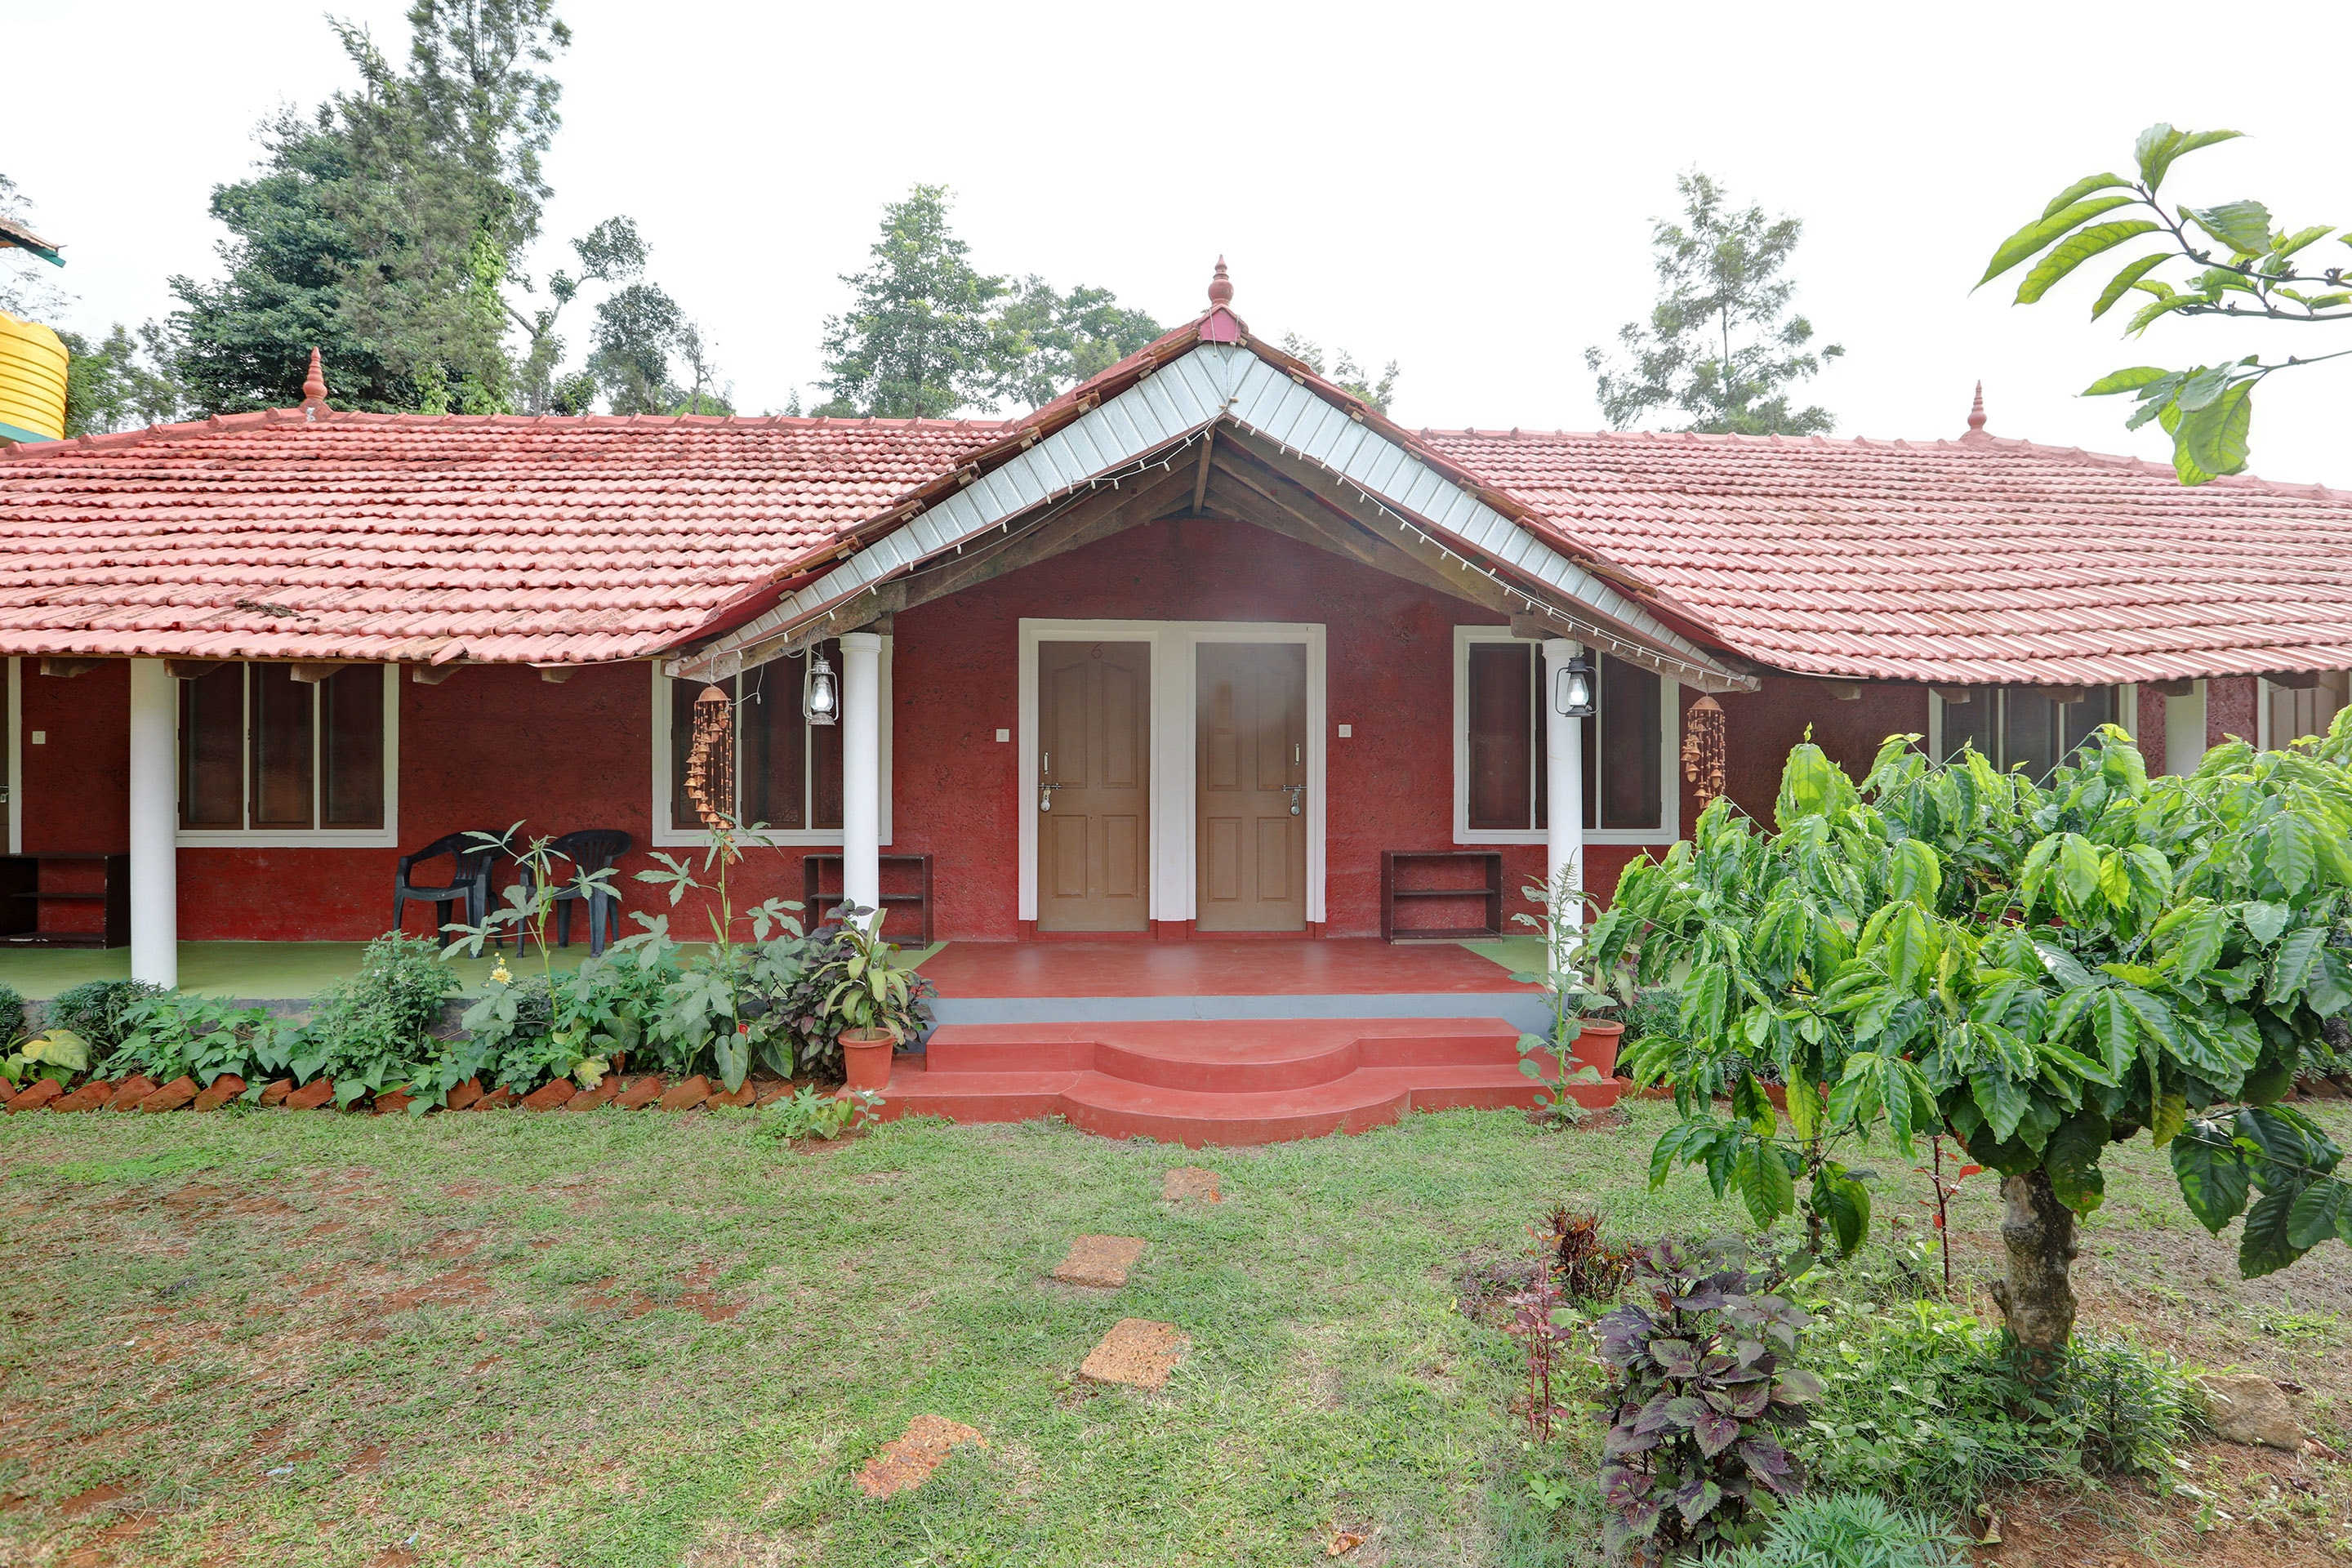 Farmhouse Near Bangalore Oyo Hotels In Coorg 50 Off On 122 Coorg Hotels Book Pay At